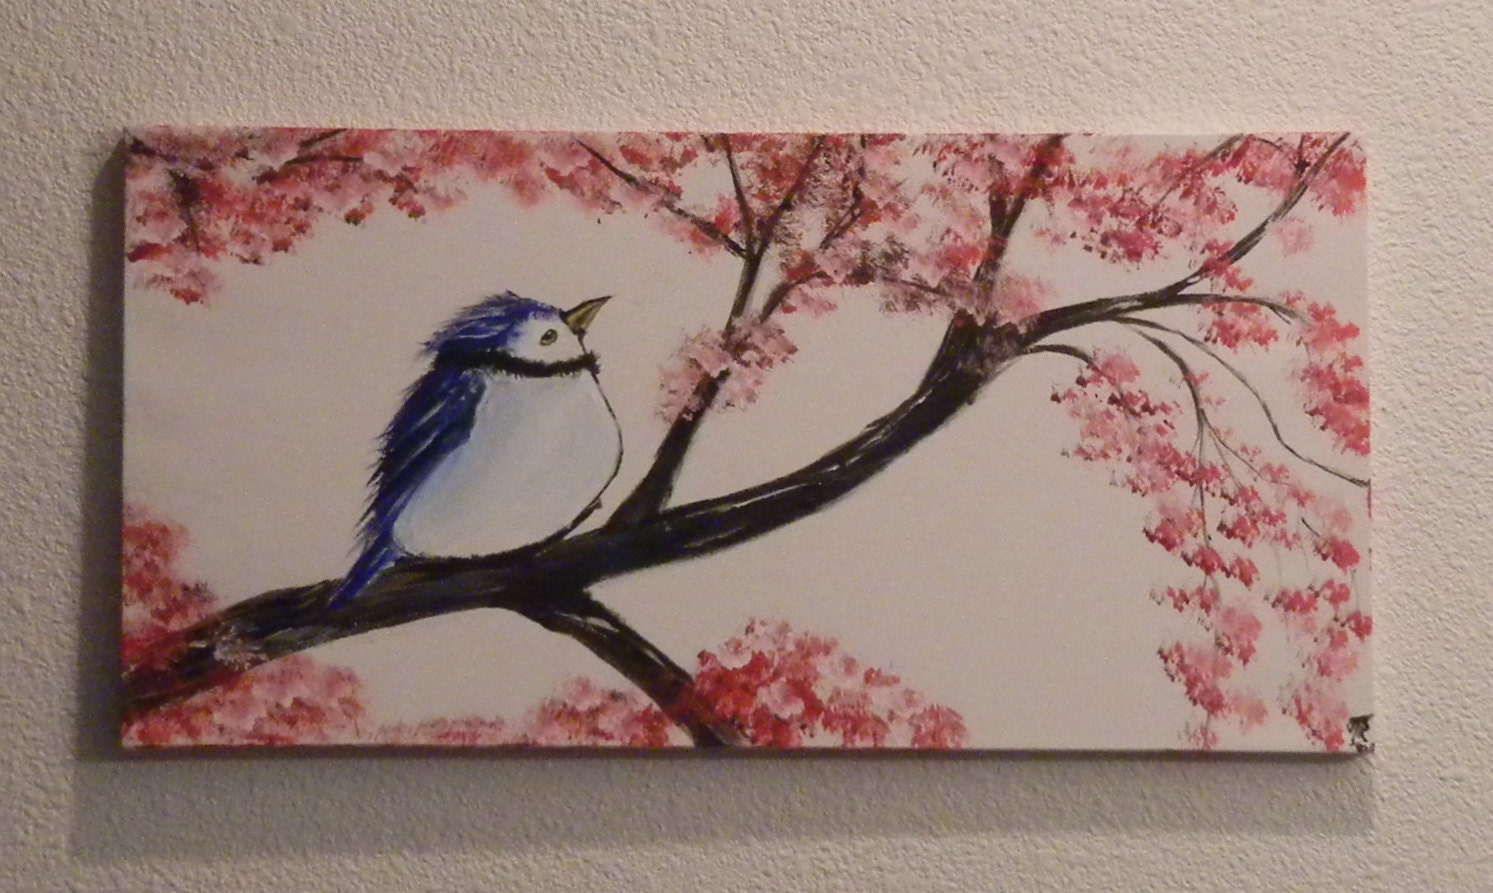 Blue Bird Painting, Acrylic Painting, Canvas Painting, Nature Painting - Codysquilts